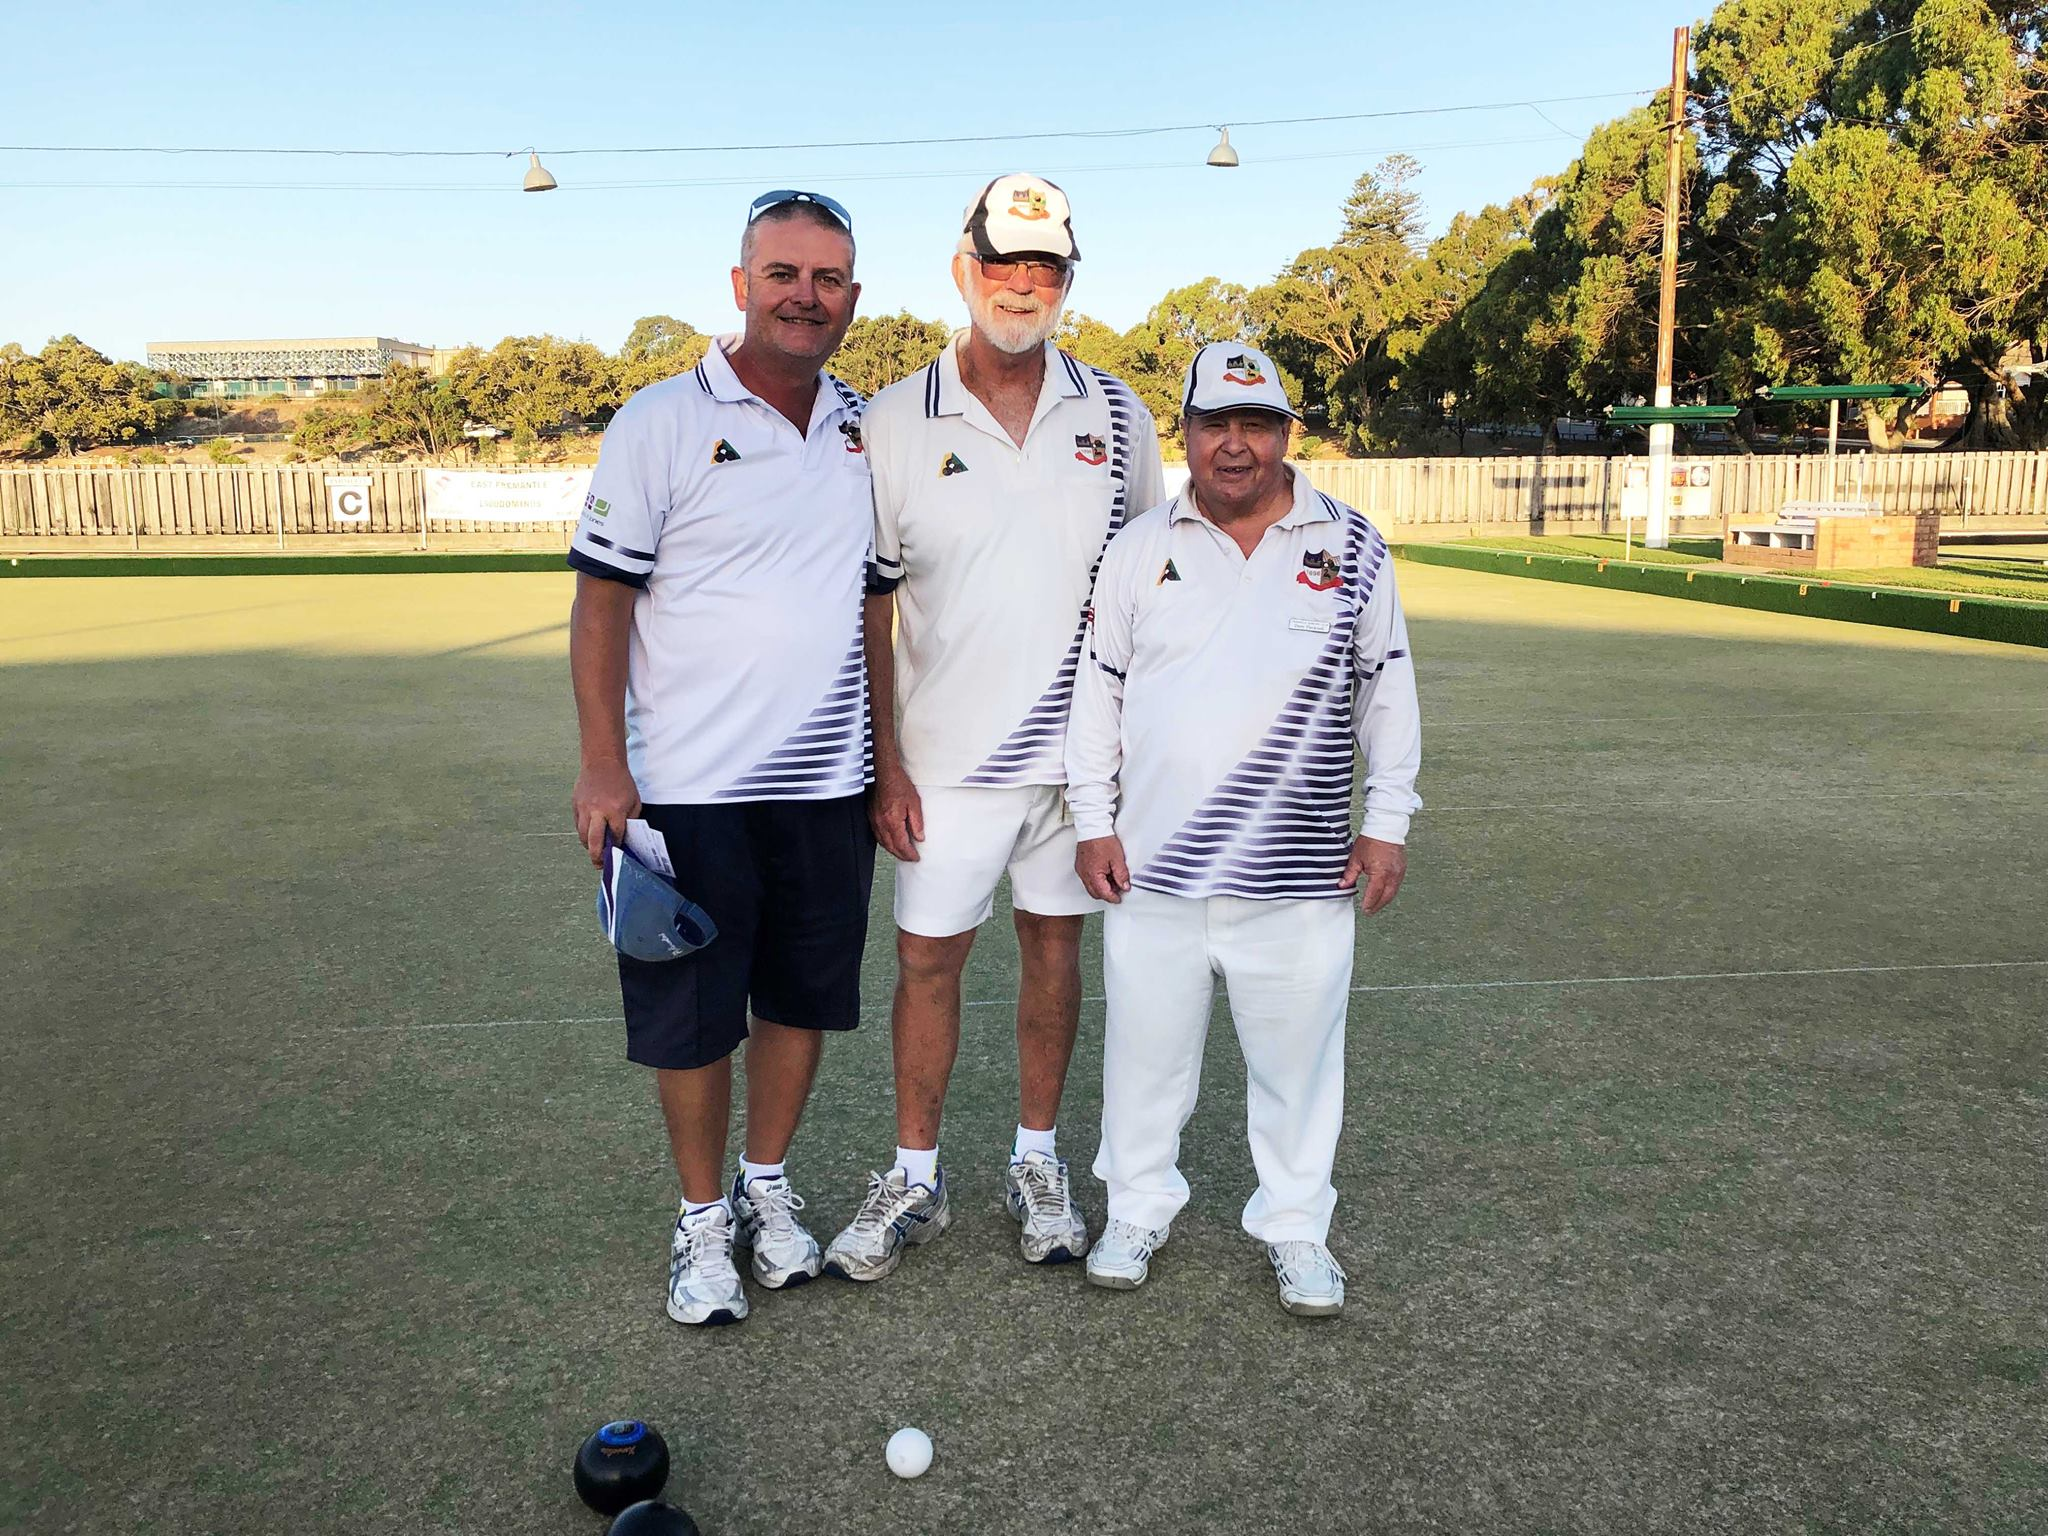 Fremantle Singles winner 2019